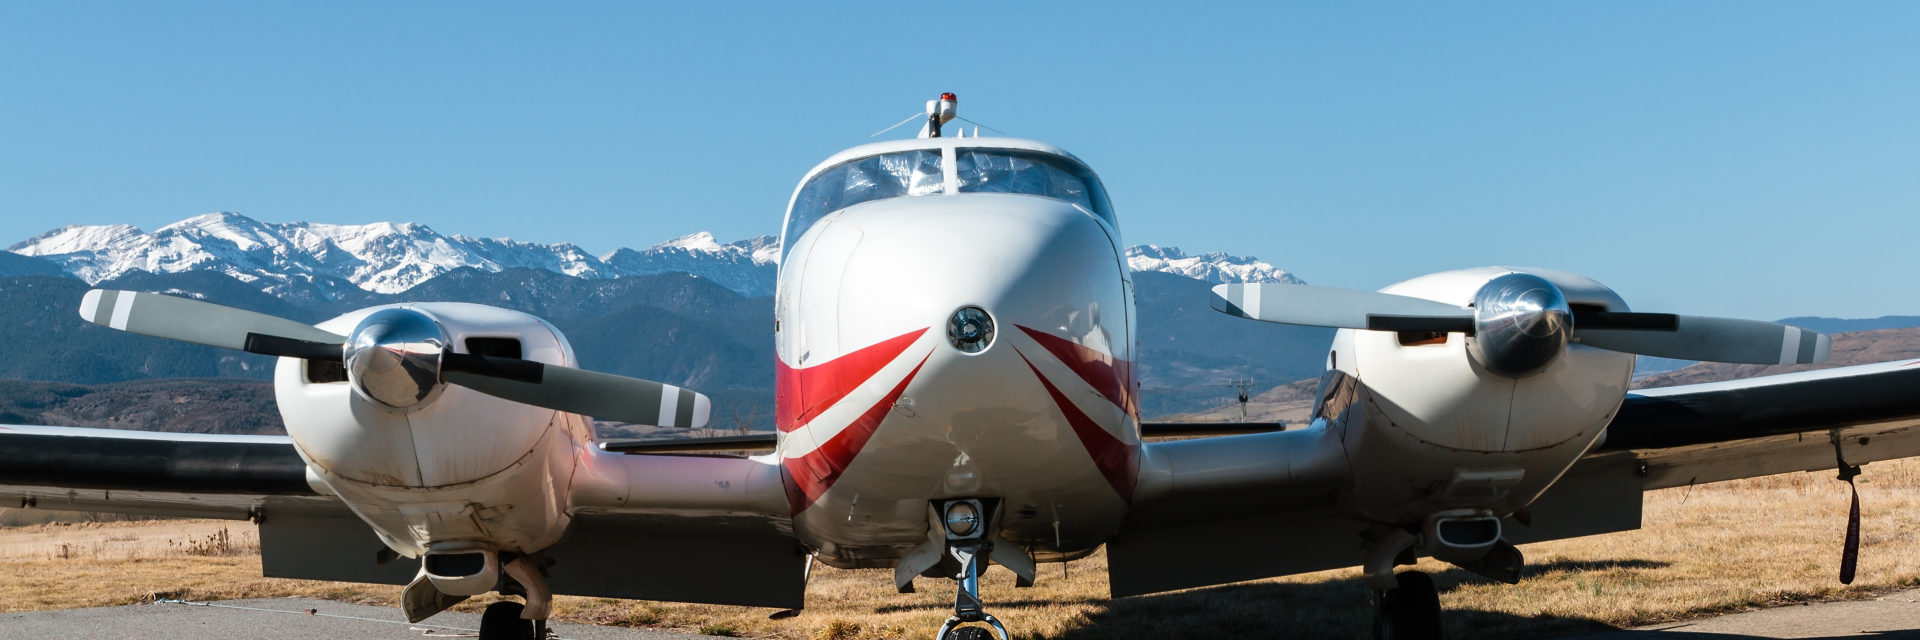 The best choice for aviation cleaning products!